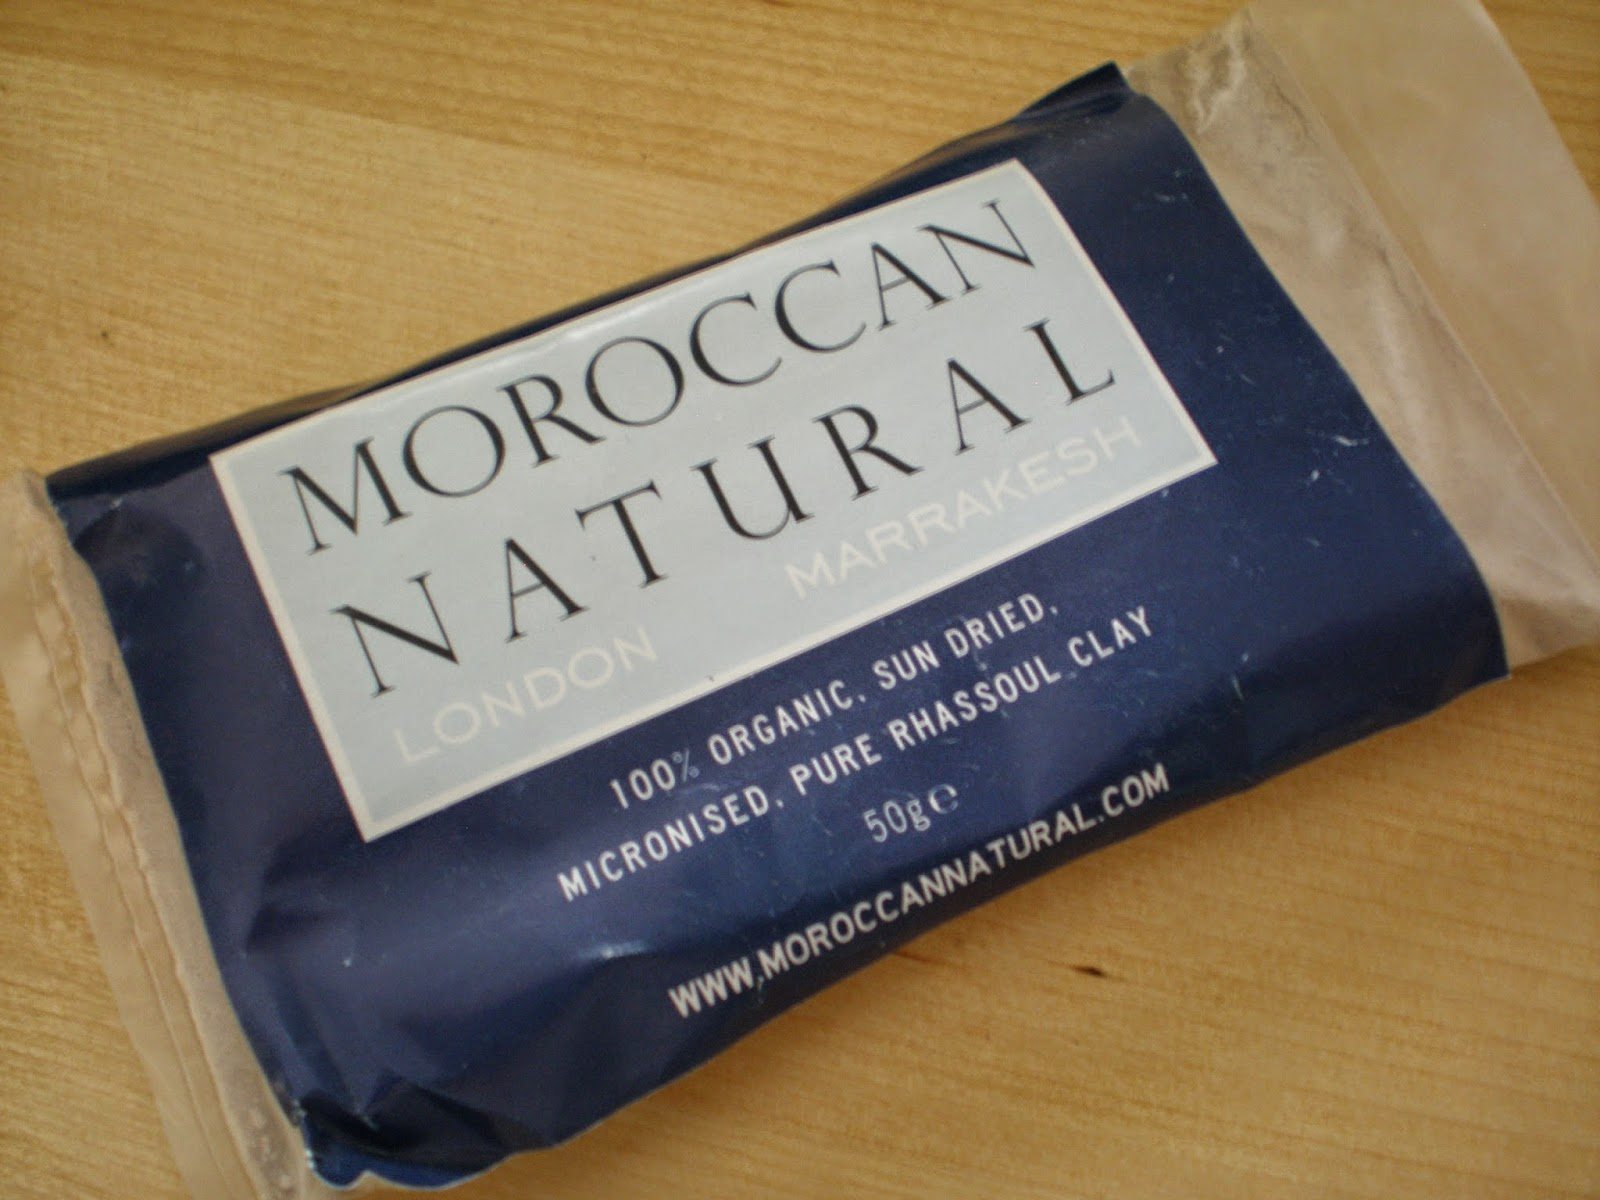 Moroccan Natural - 100% Rhassoul clay